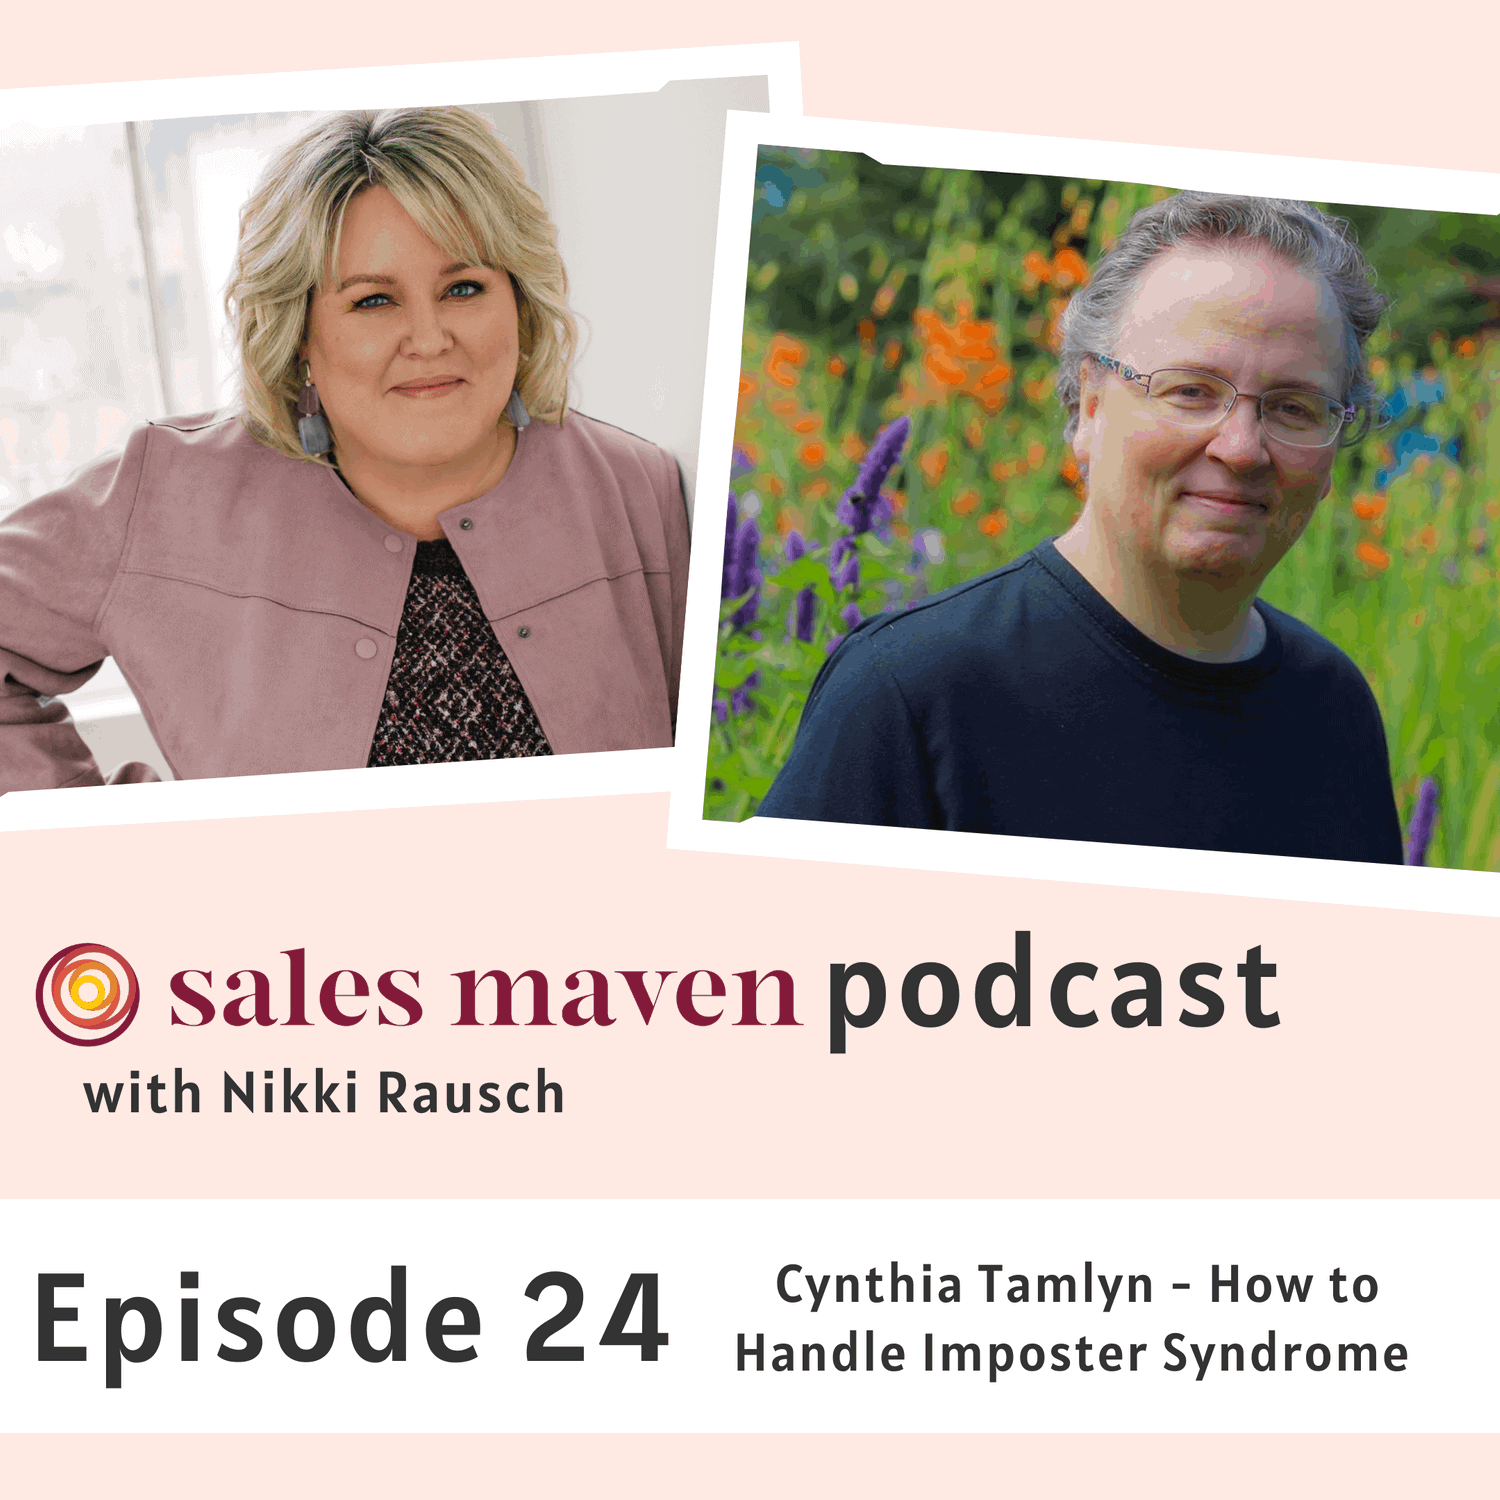 How to handle imposter syndrome with Cynthia Tamlyn - Sales Maven Podcast